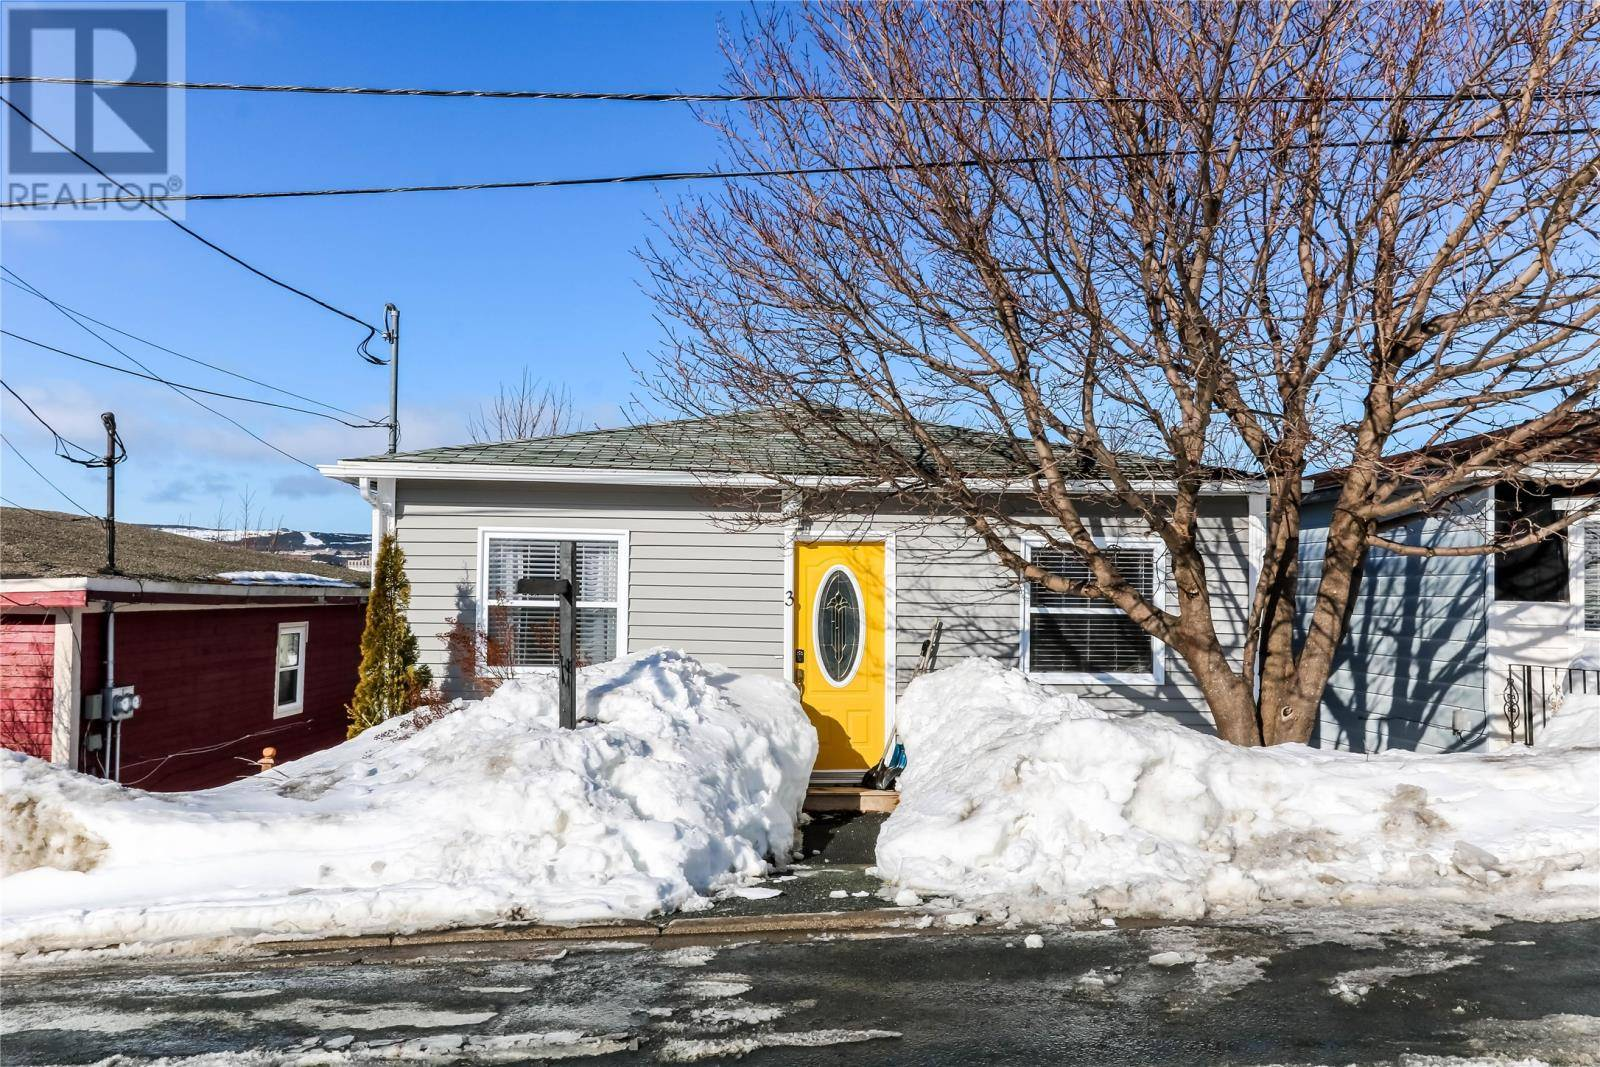 House for sale at 3 Cabot Ave St. John's Newfoundland - MLS: 1210146